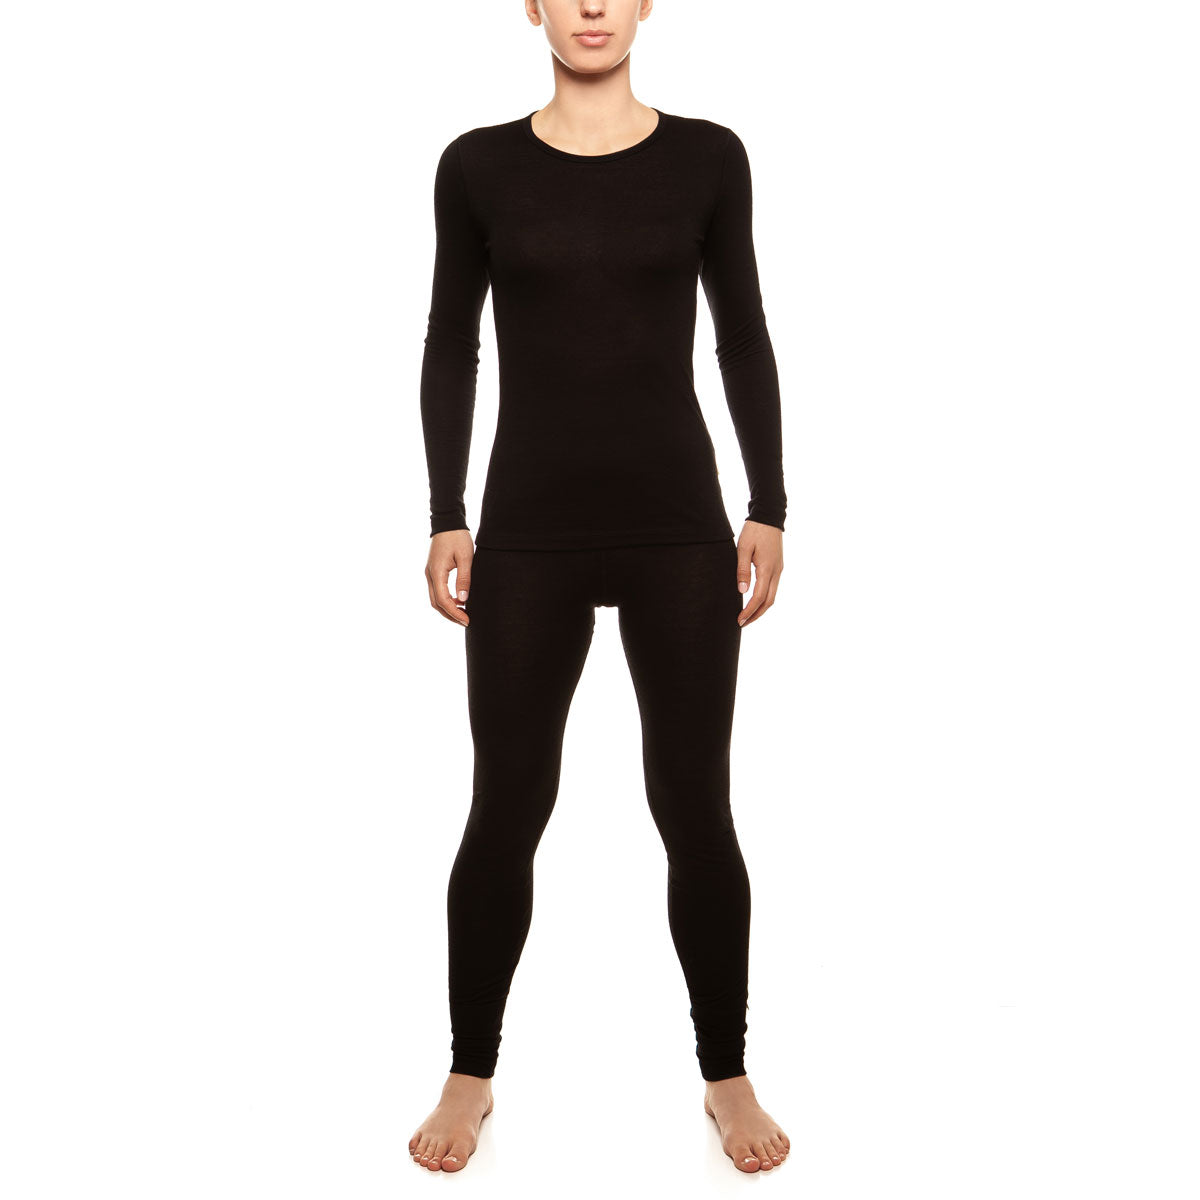 menique Women's Merino 160 Long Sleeve Set Black Color